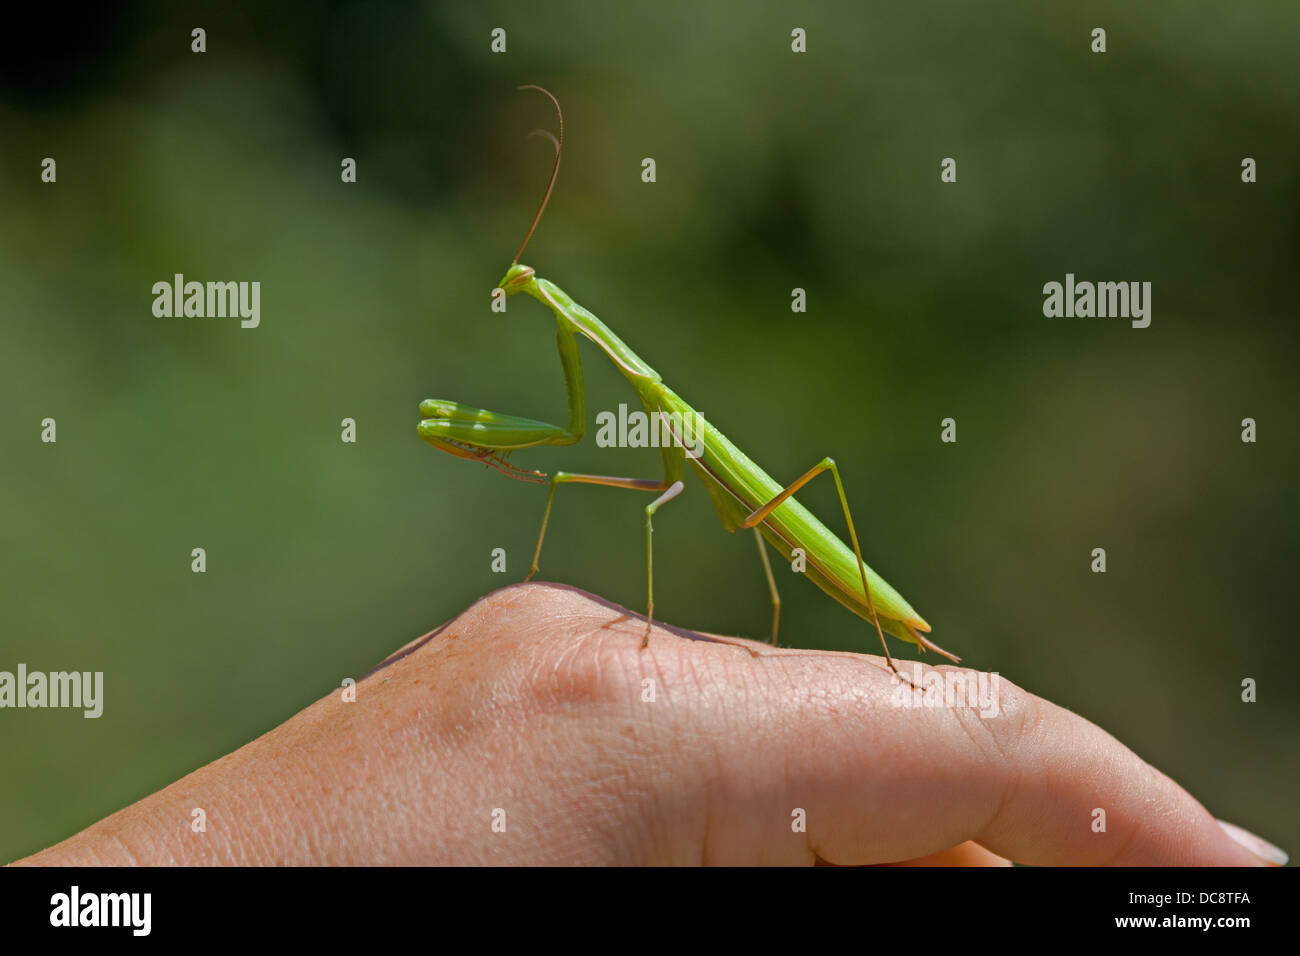 Preying Mants perched on hand. Corfu. Greece. Stock Photo